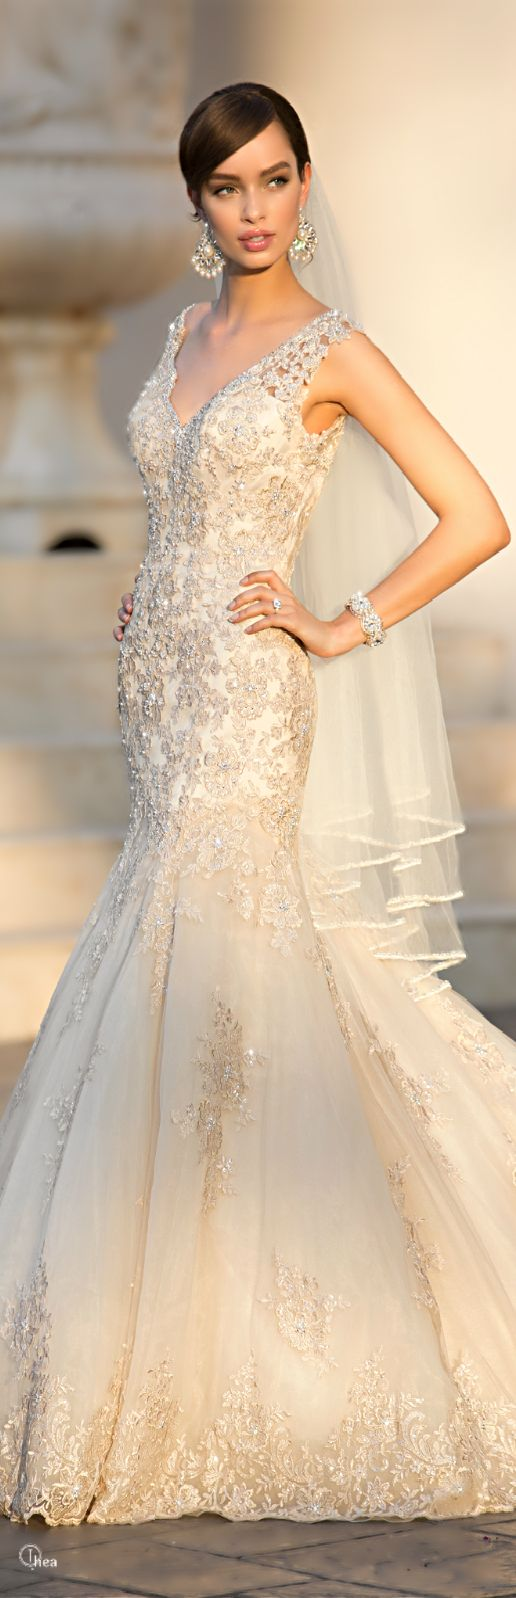 Todays Bride and Formal Wear- Lexington Park MD. Stella York gold lace wedding gown with embellished appliques and cathedral length veil